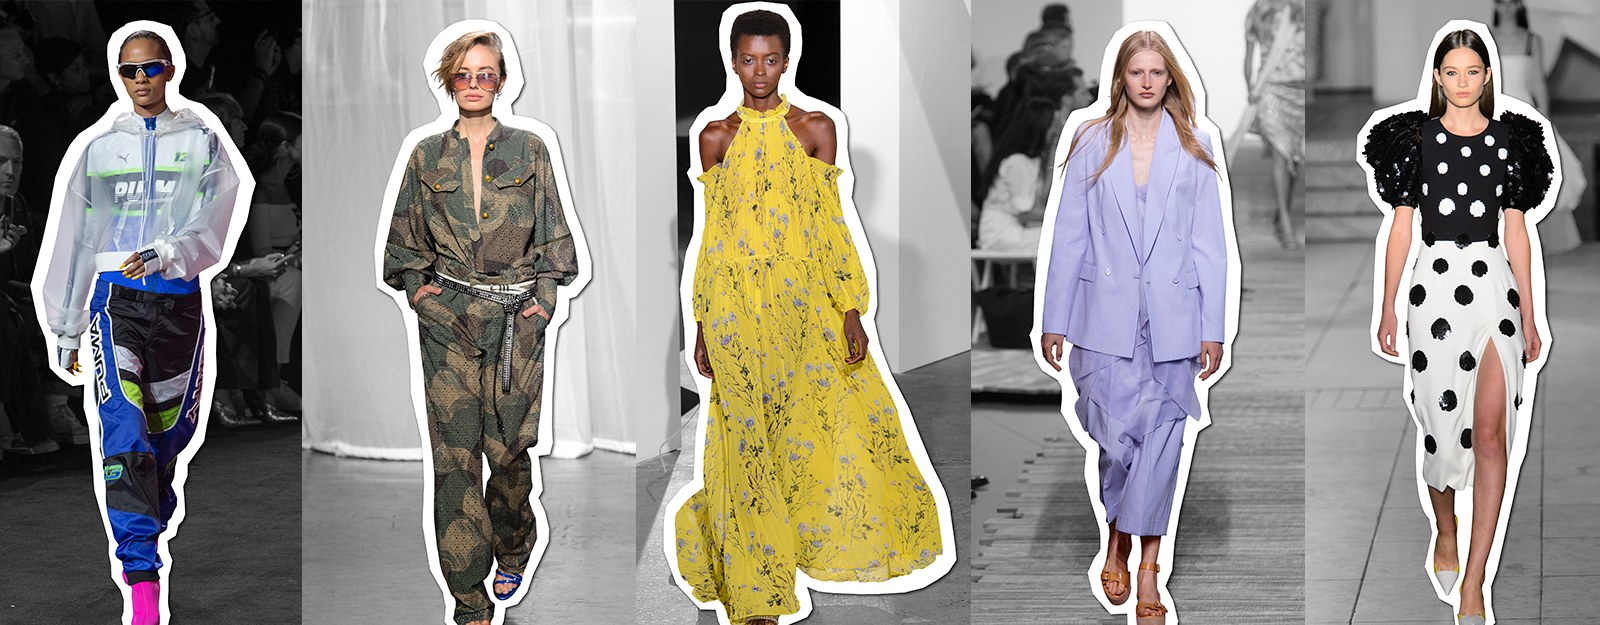 Fashion Trends for Spring/Summer 2020 by Fashion Snoops ...